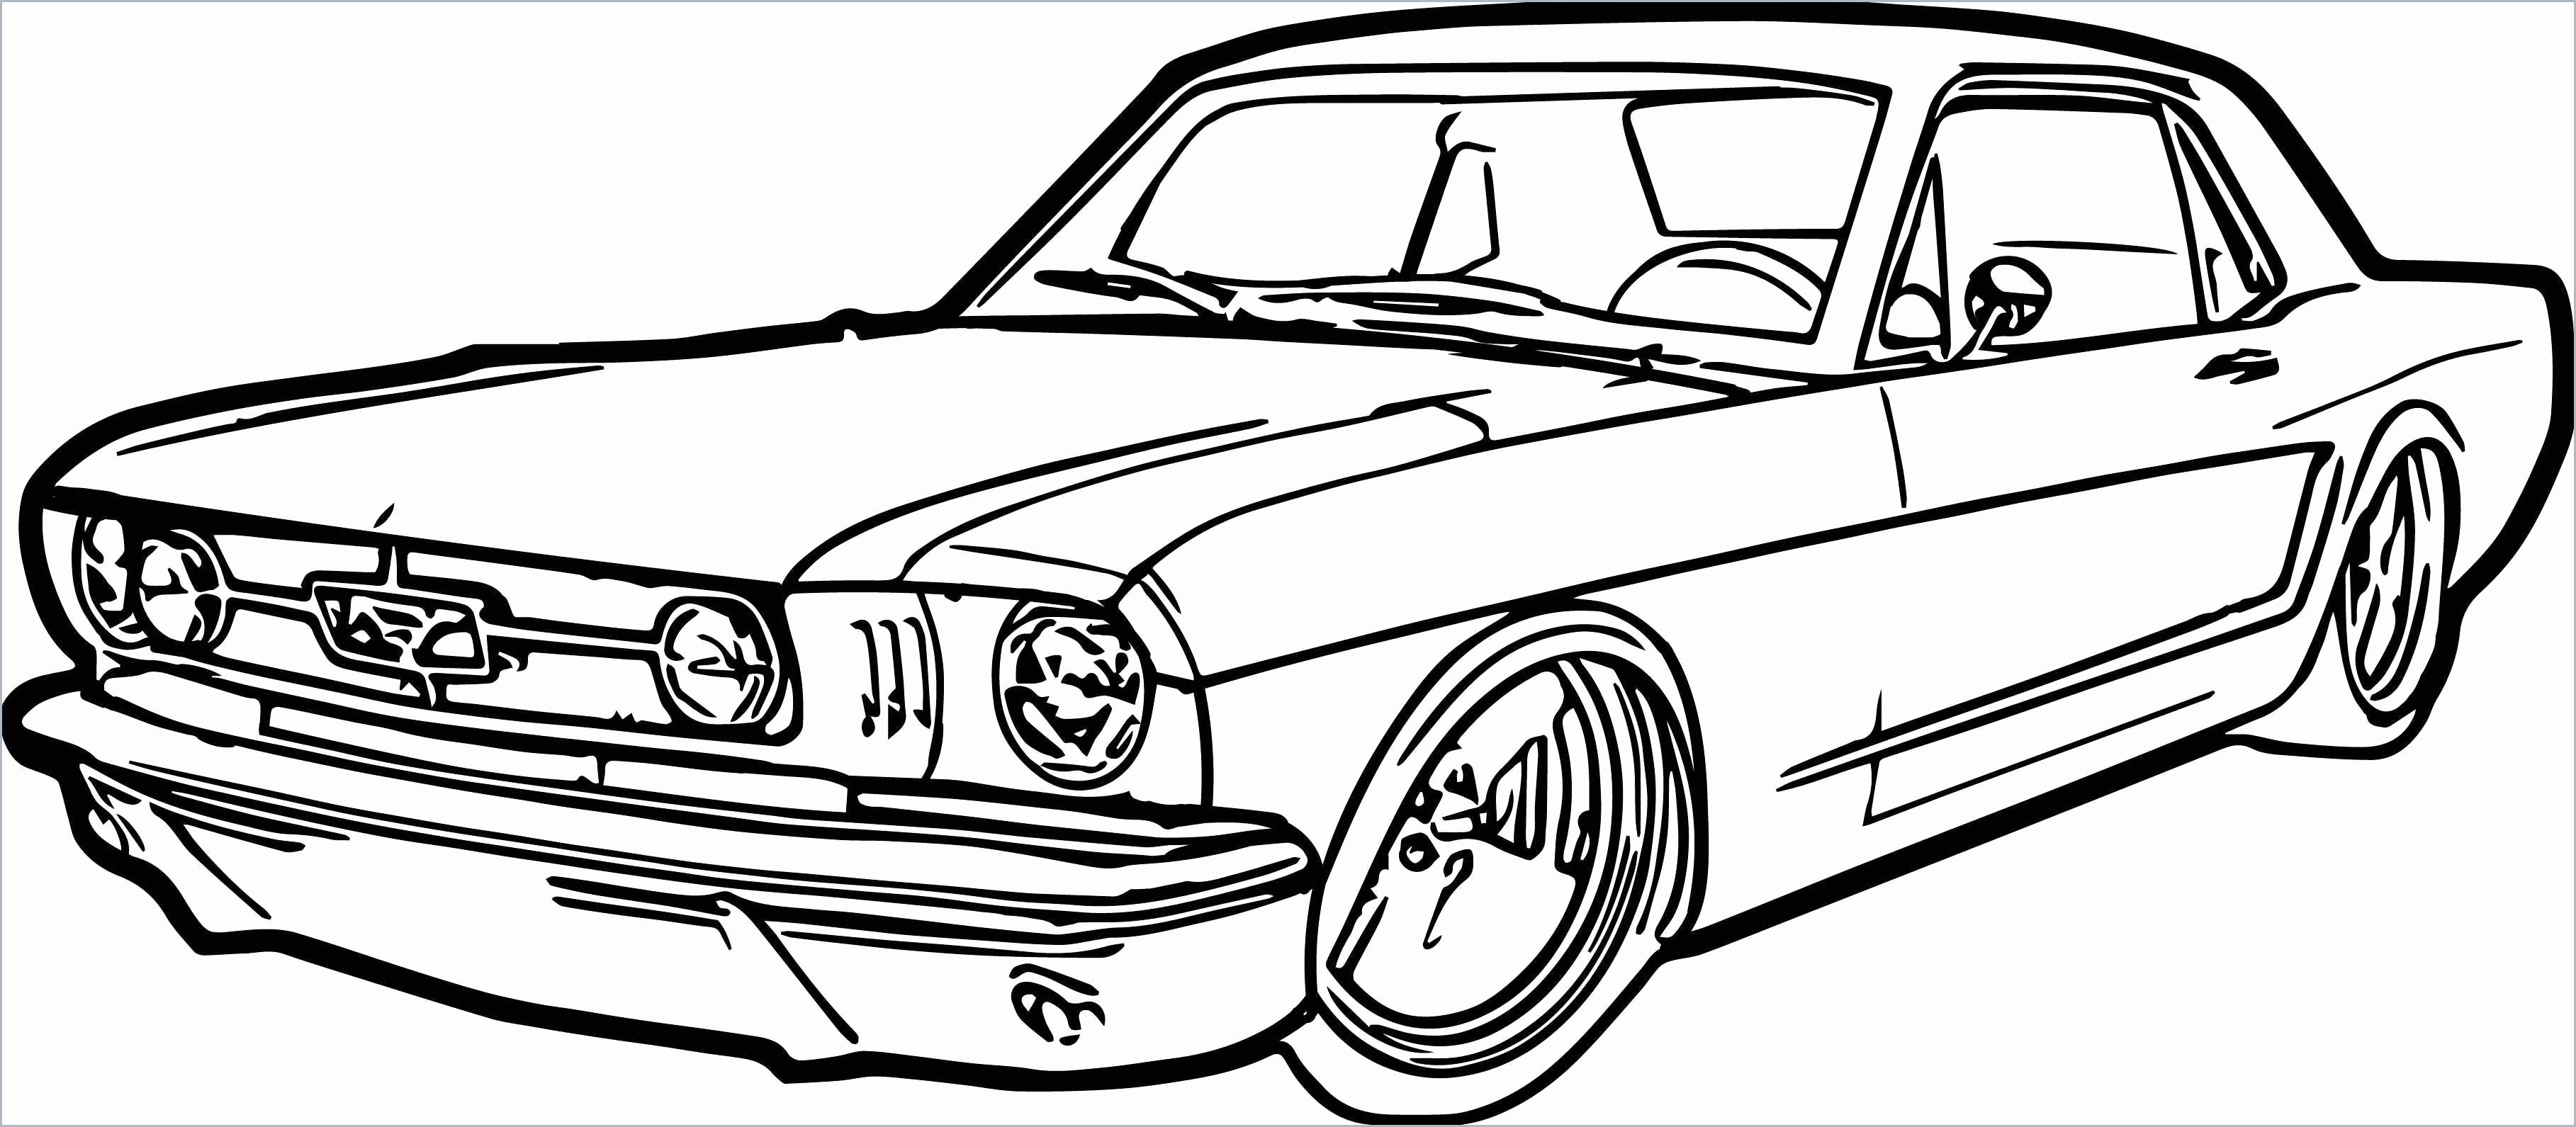 3635x1591 Kleurplaat Nieuw Muscle Car Drawings Fresh Car Coloring Pages